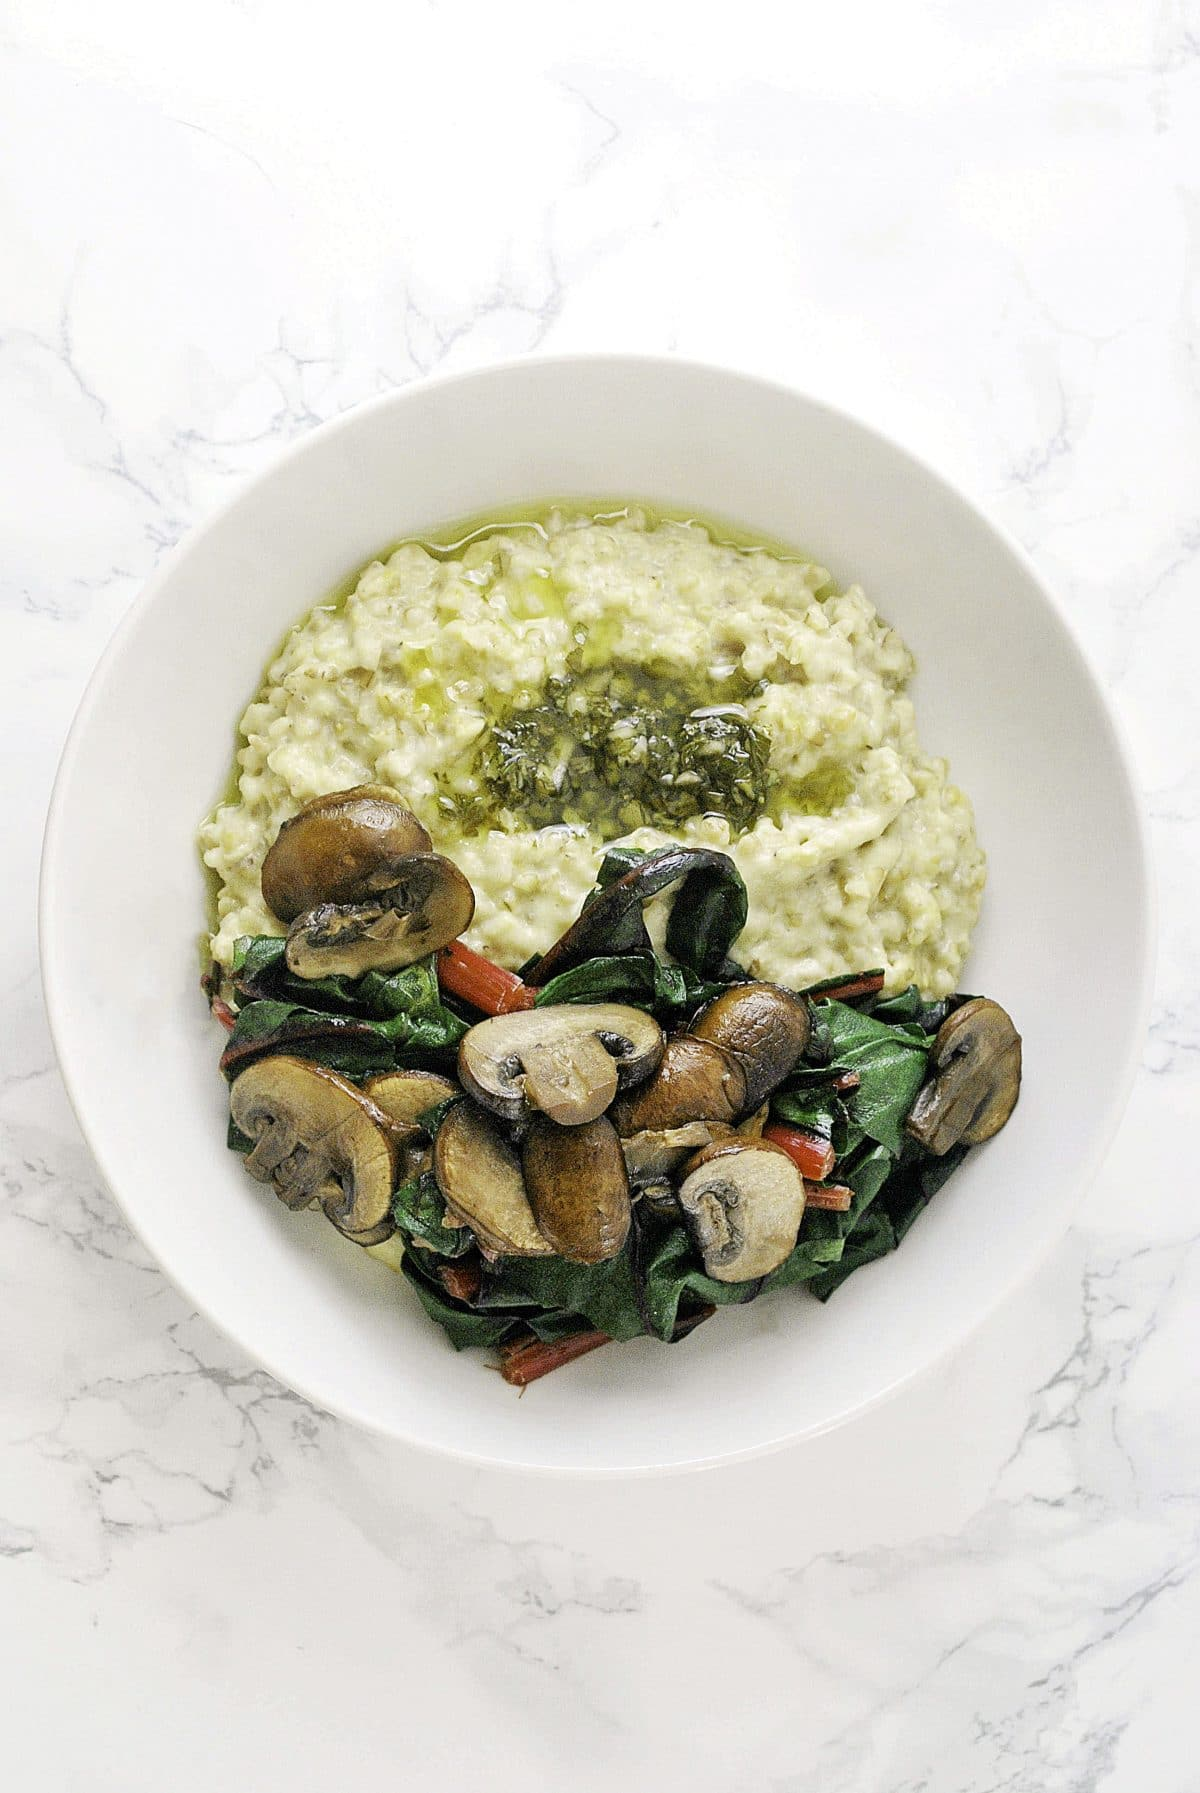 a bowl of chimichurri oats with mushrooms and swiss chard